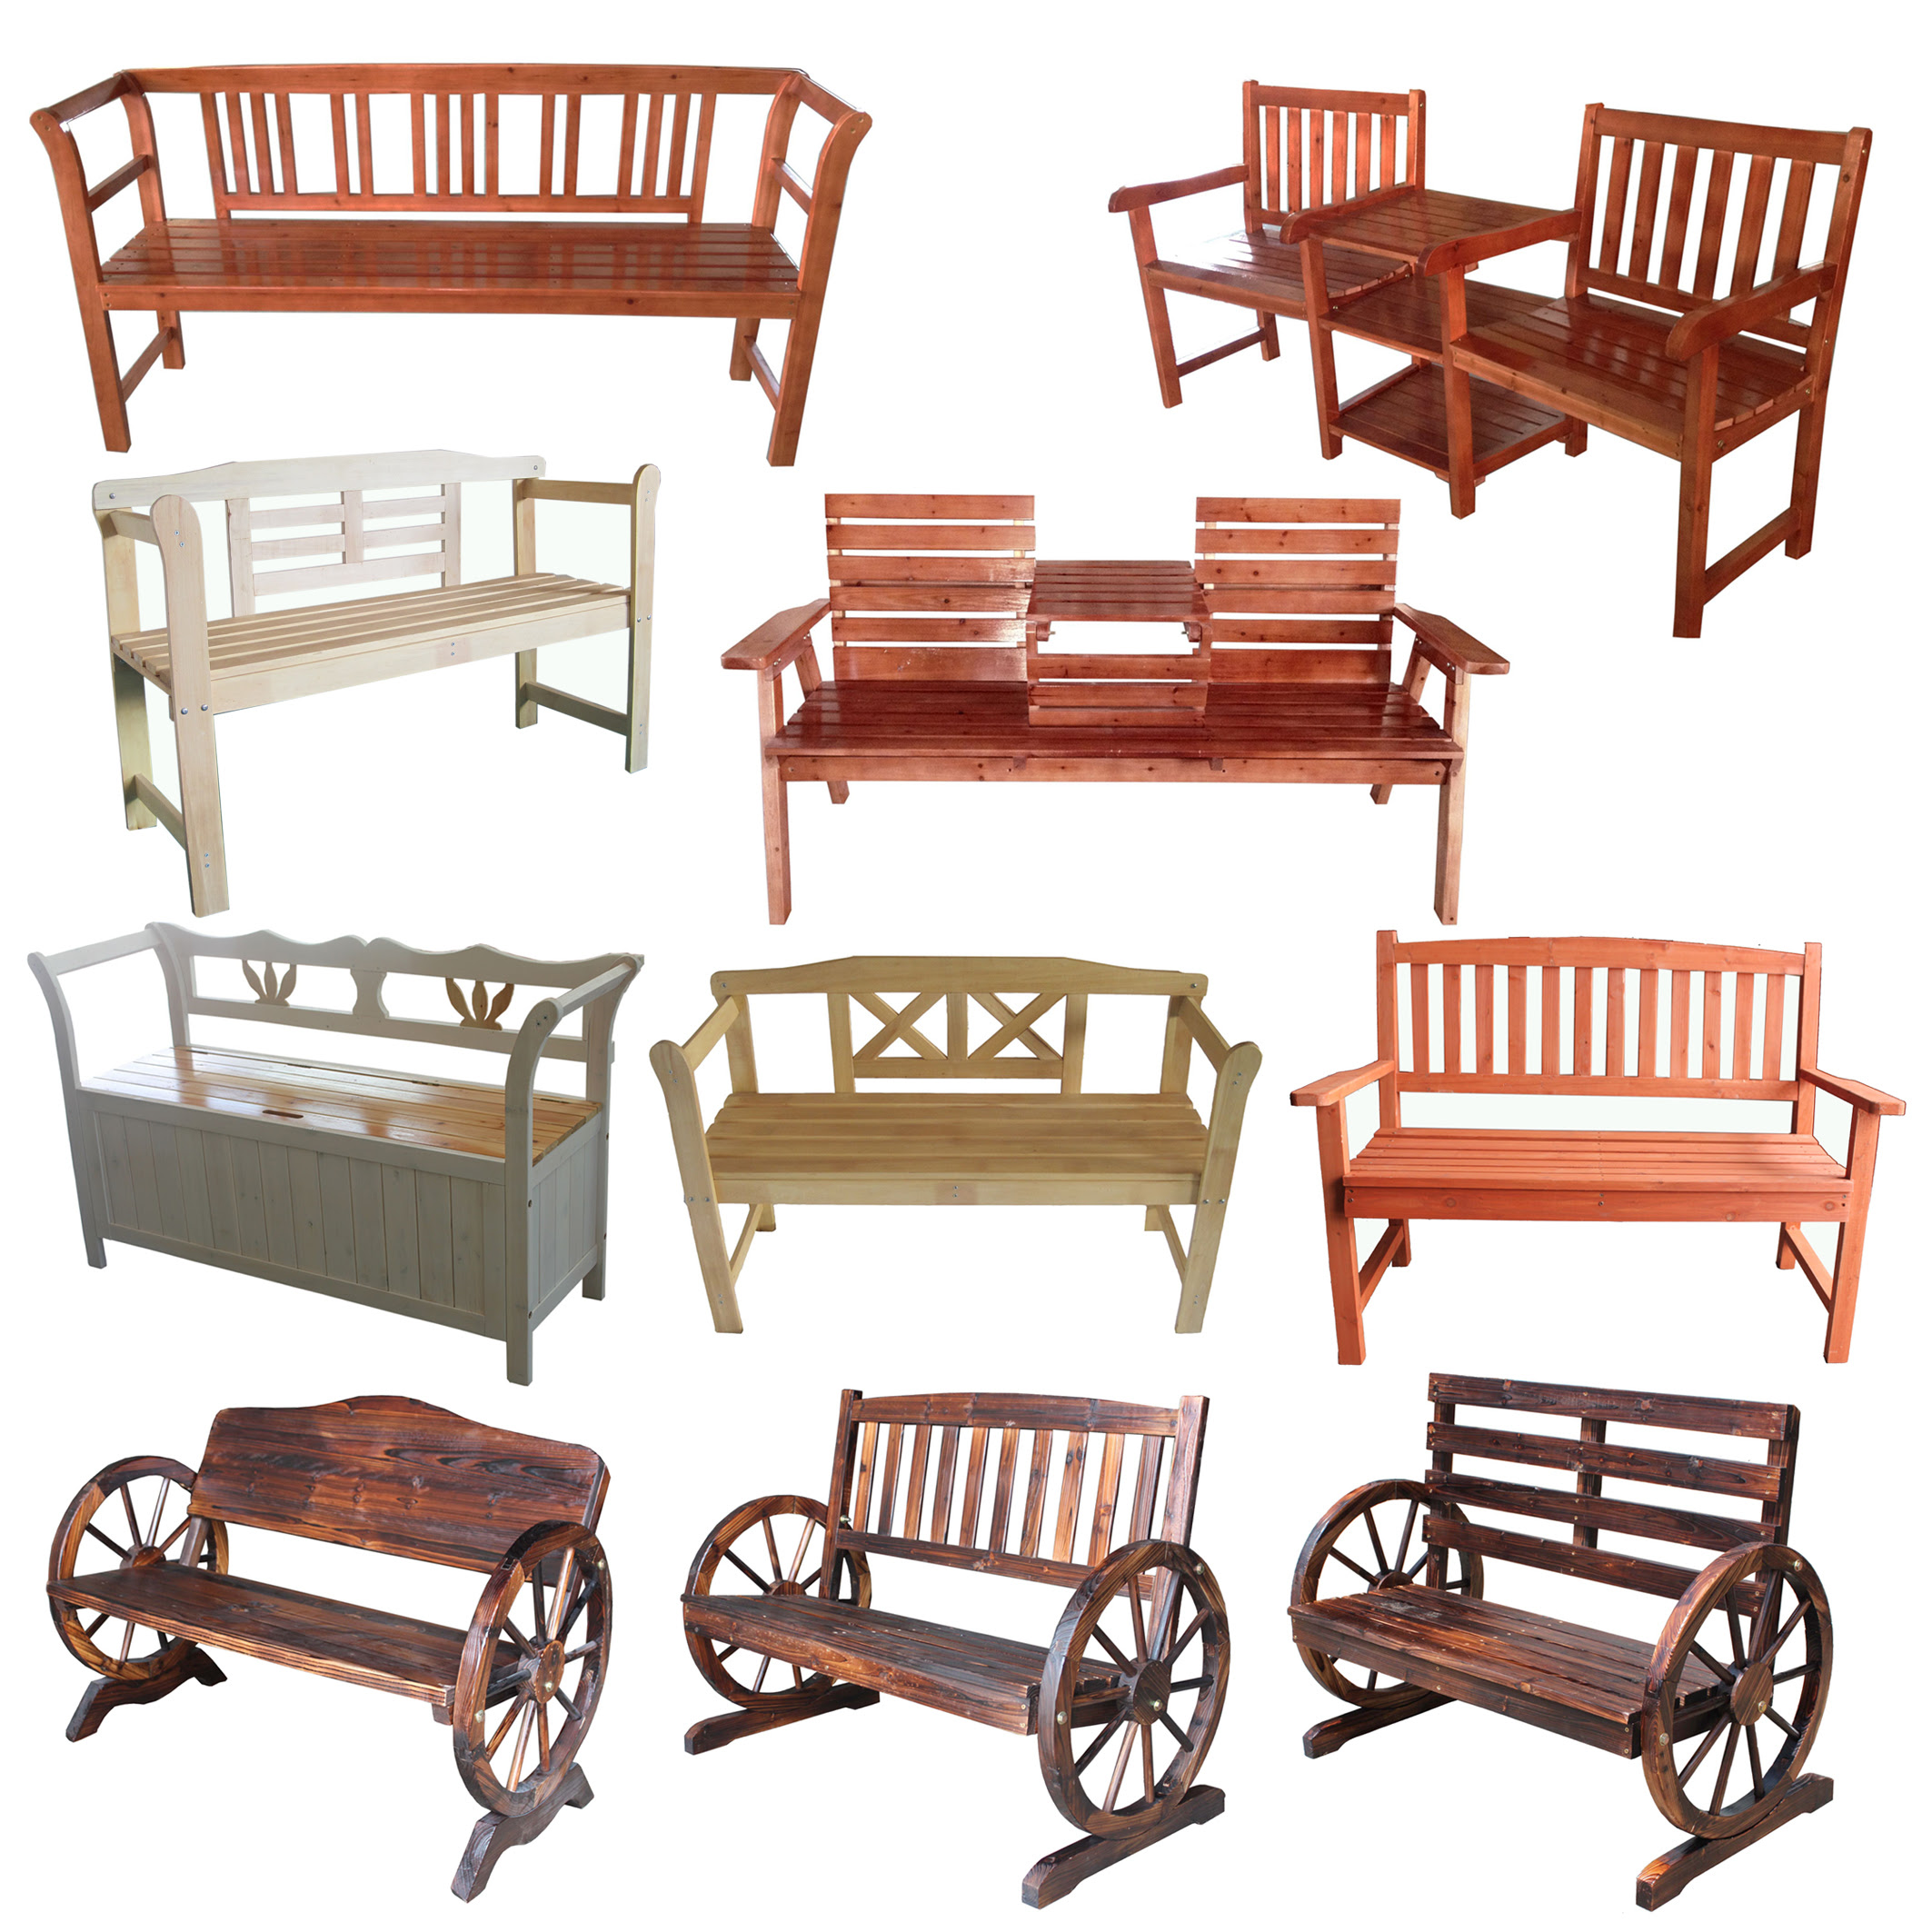 FoxHunter 2/3 Seater Wooden Bench Chair Table Outdoor ...